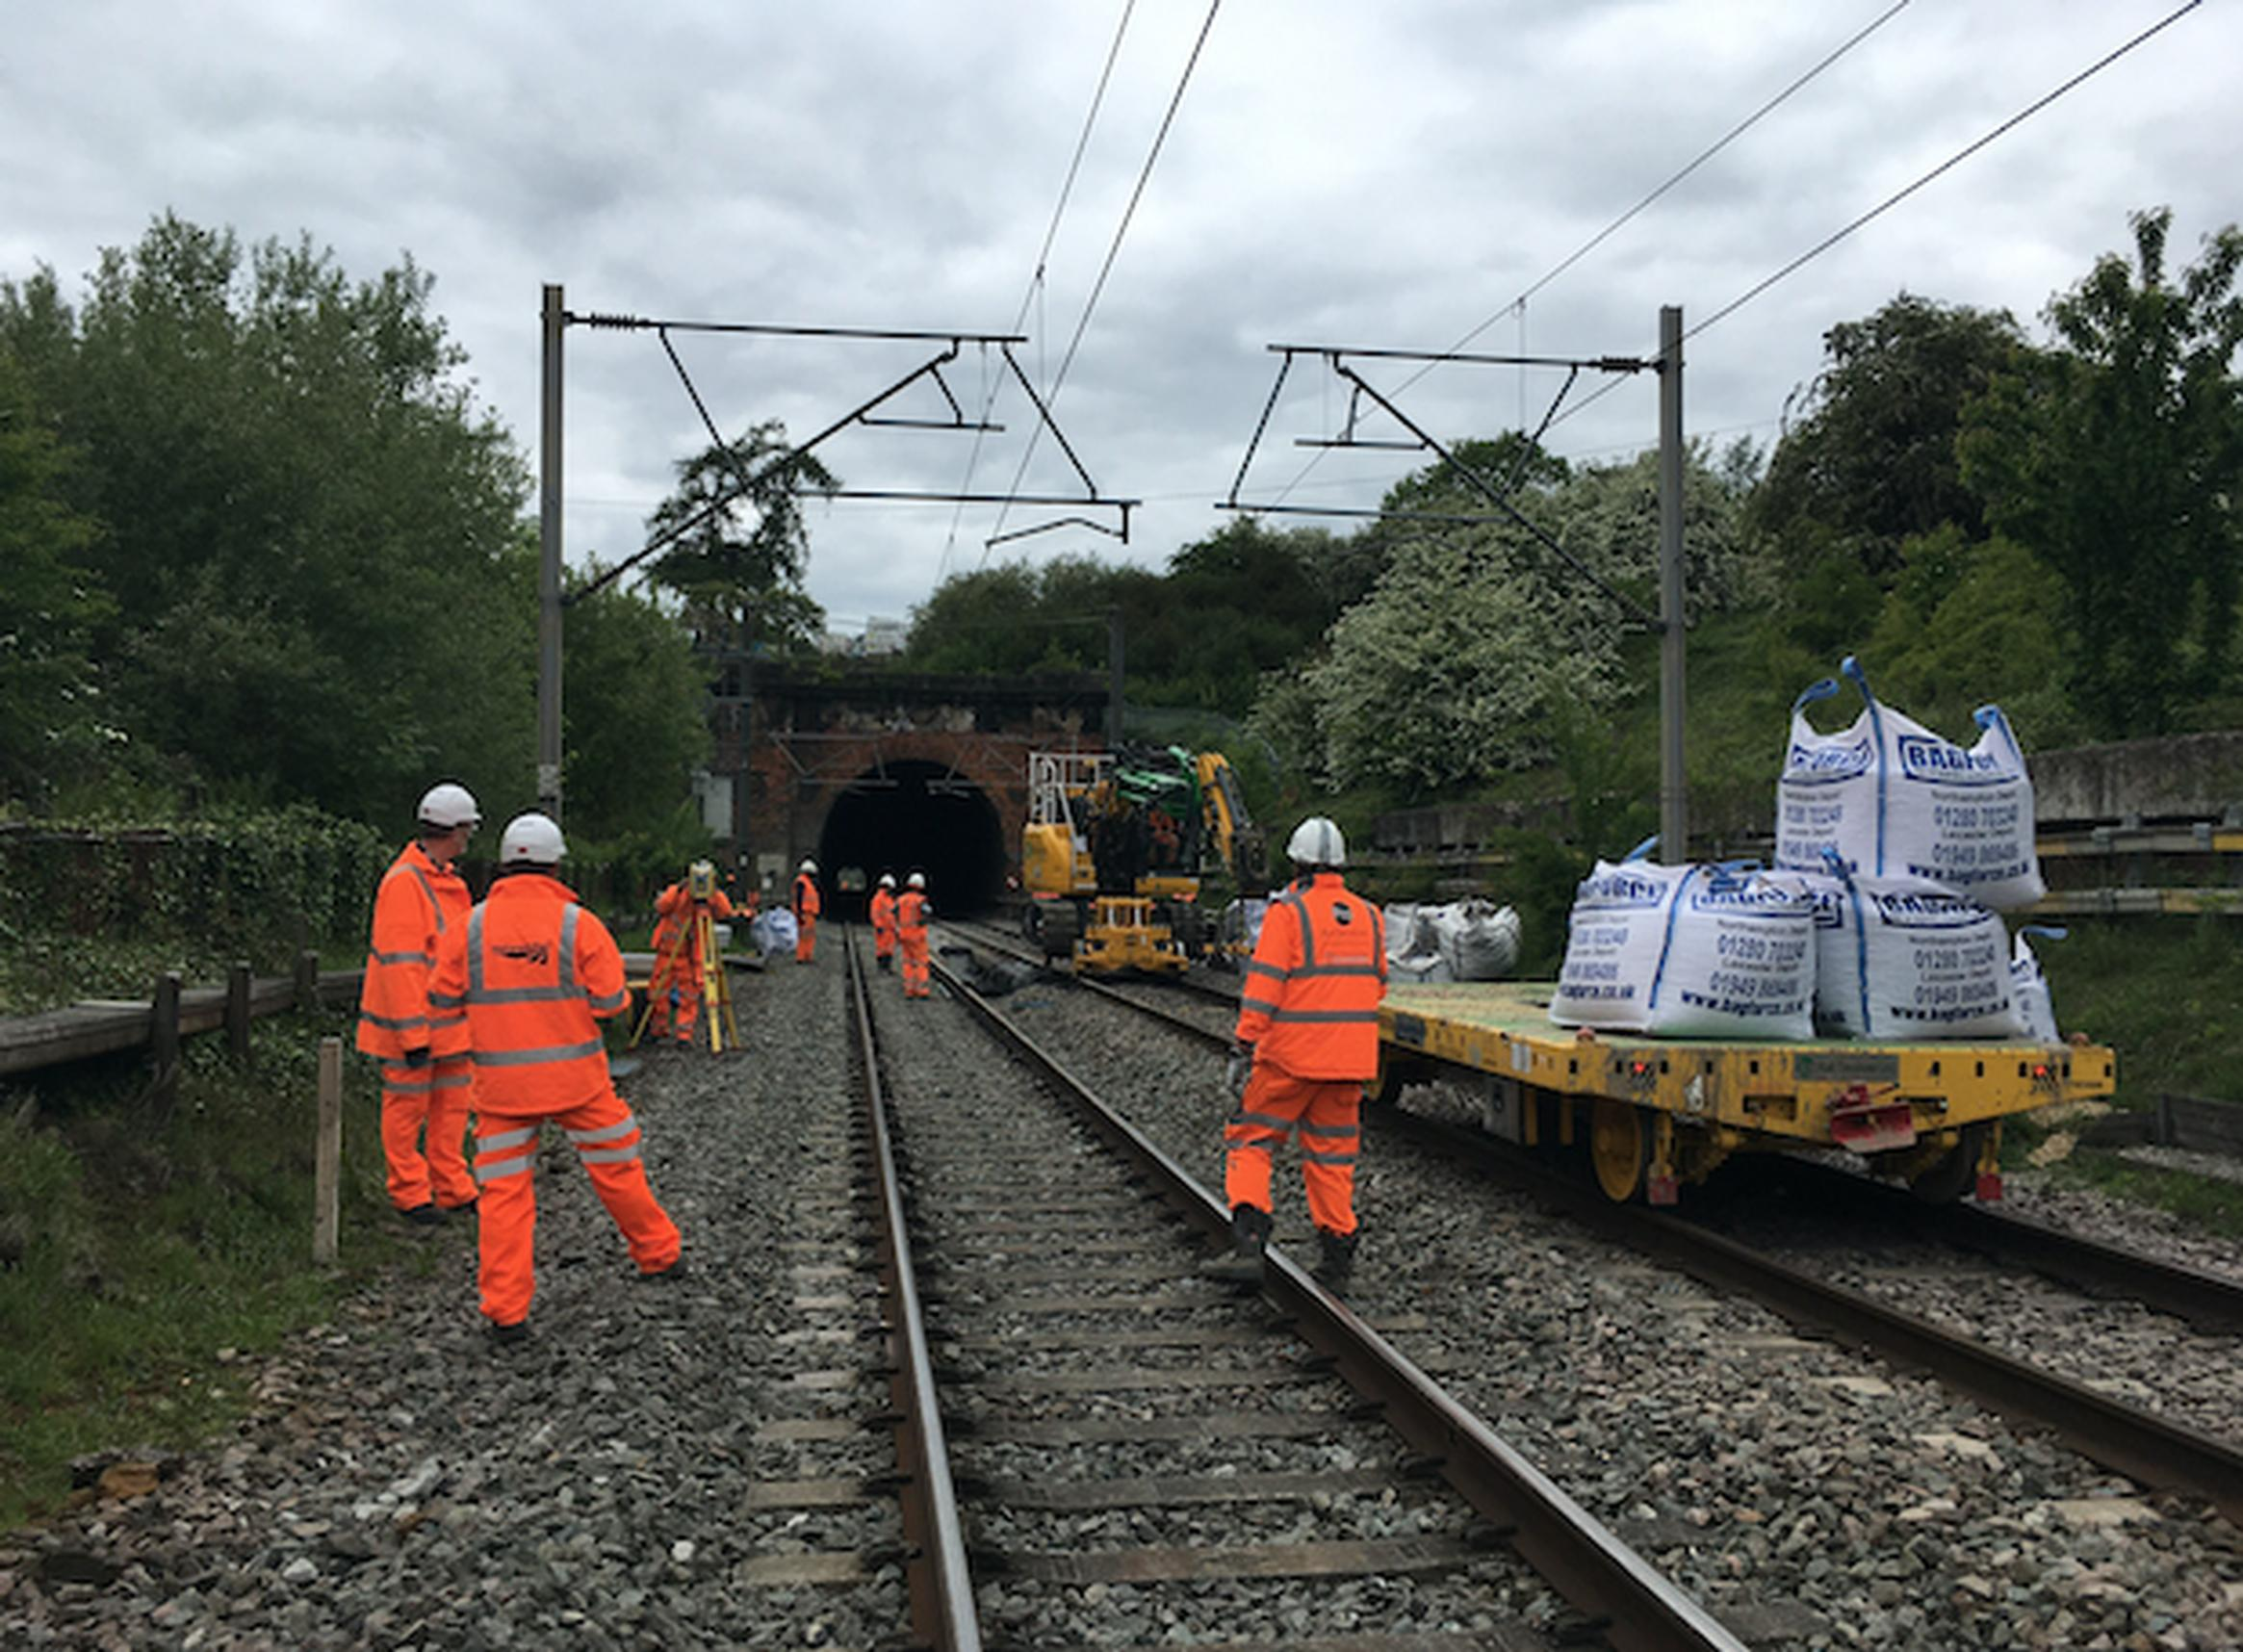 Workers carried out essential repairs on the Kilsby Tunnel